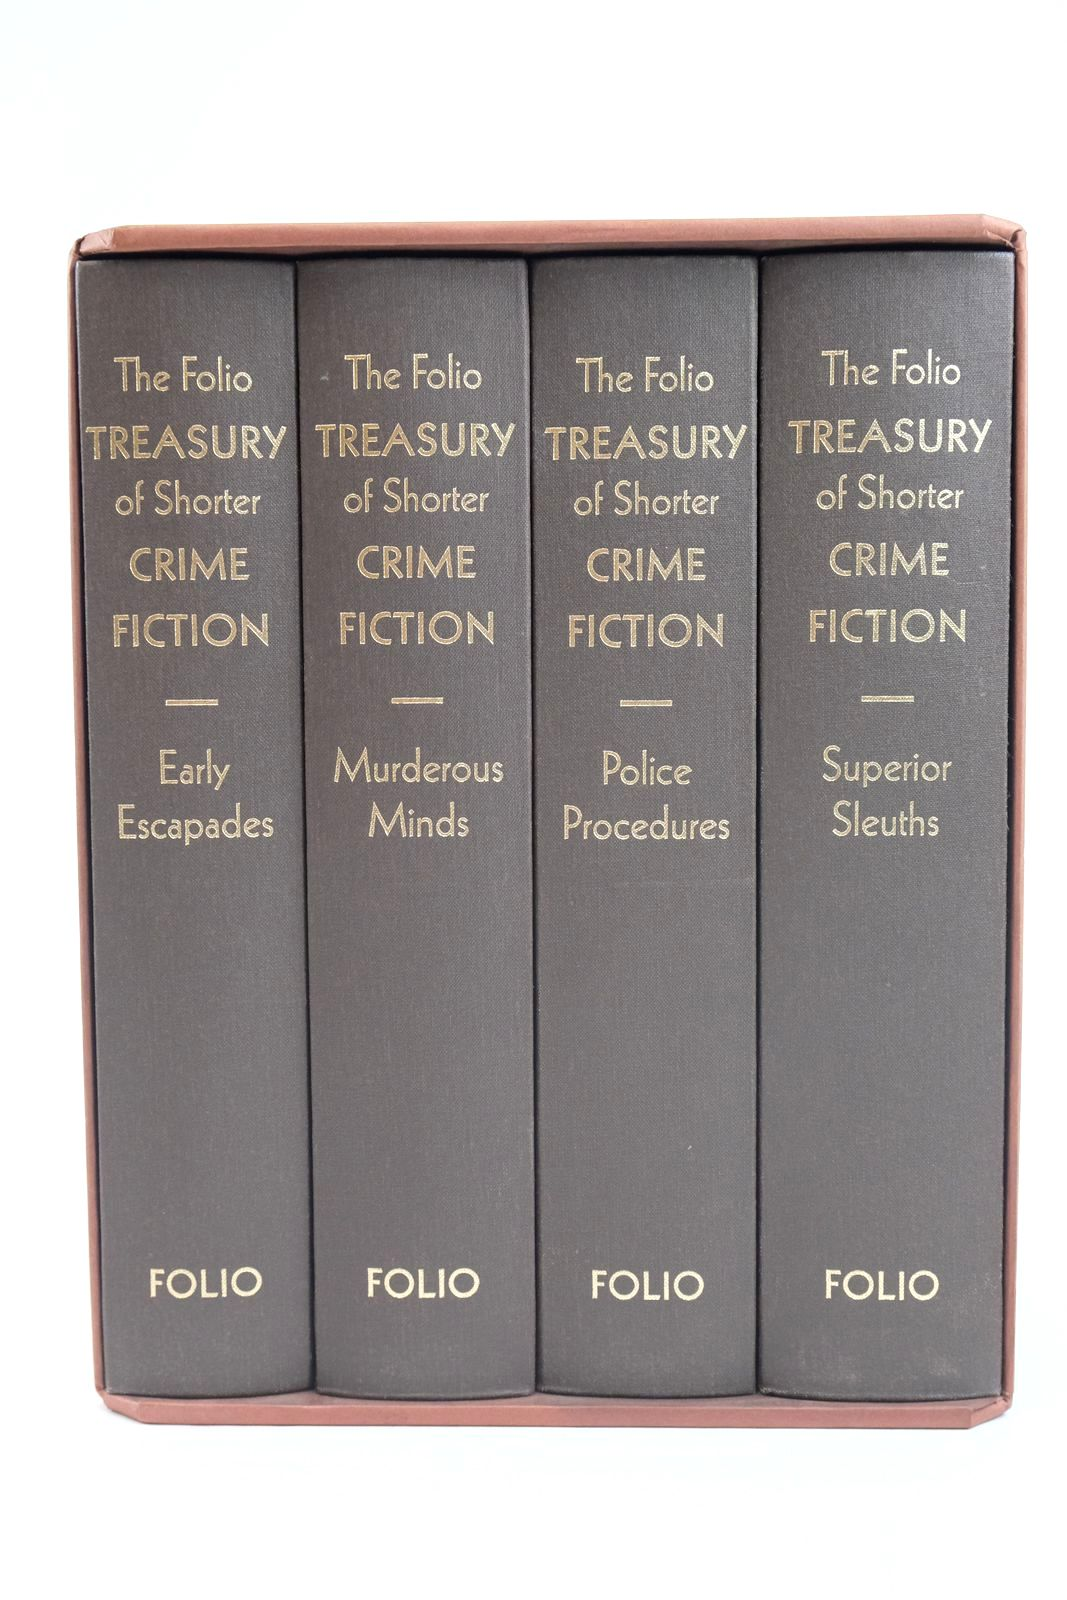 Photo of THE FOLIO TREASURY OF SHORTER CRIME FICTION (4 VOLUMES) written by Heald, Tim Bradbury, Sue illustrated by Hardcastle, Nick published by Folio Society (STOCK CODE: 1320004)  for sale by Stella & Rose's Books